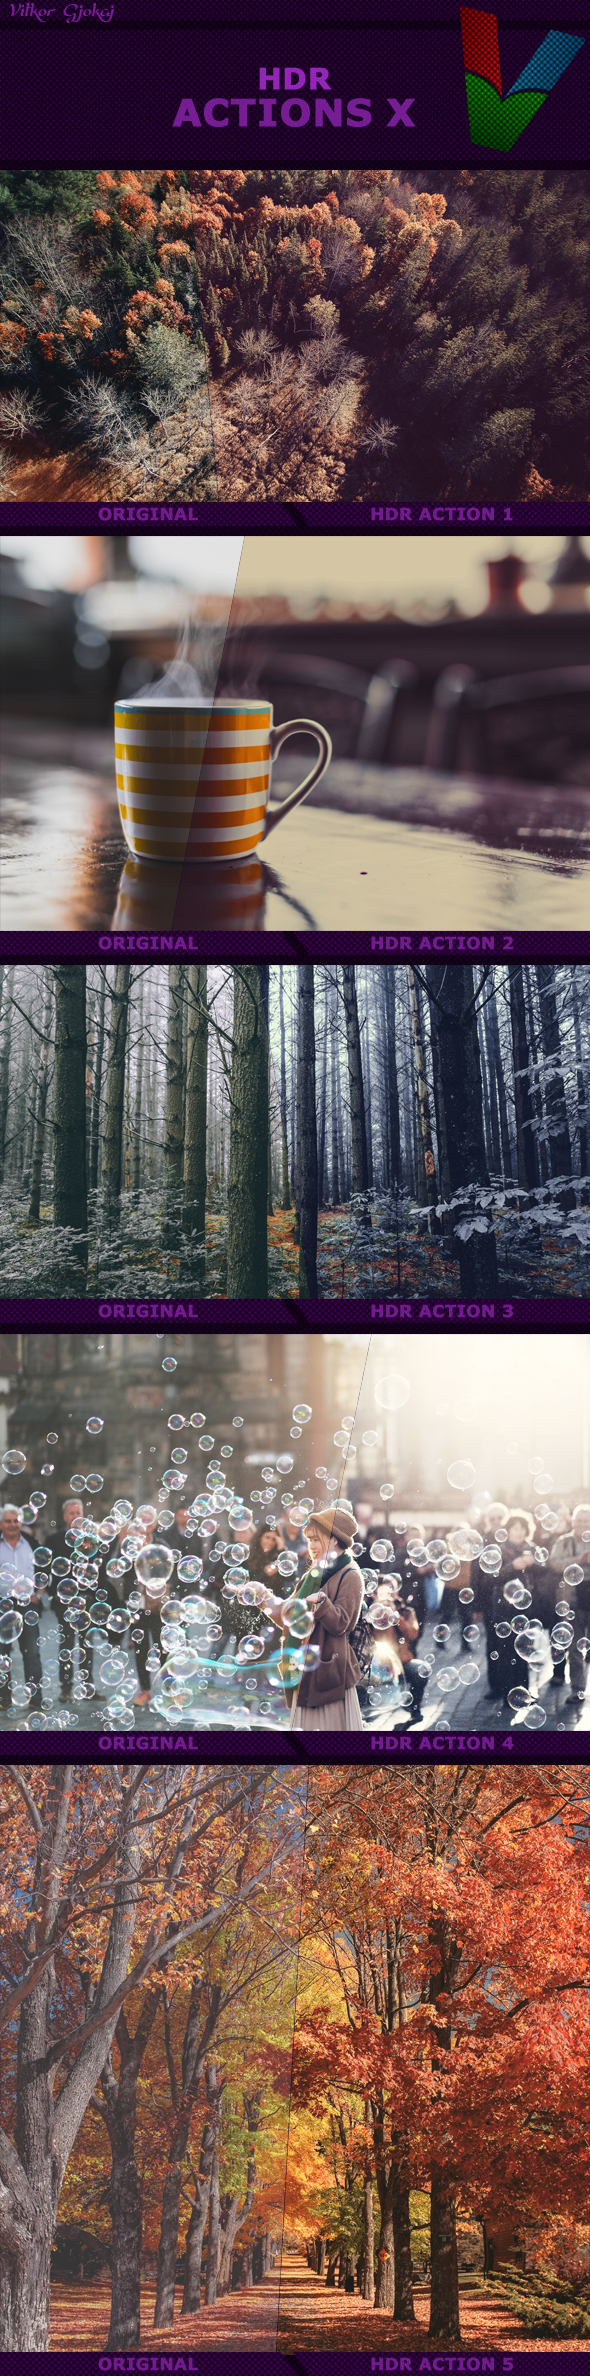 HDR Actions X - Photo Effects Actions